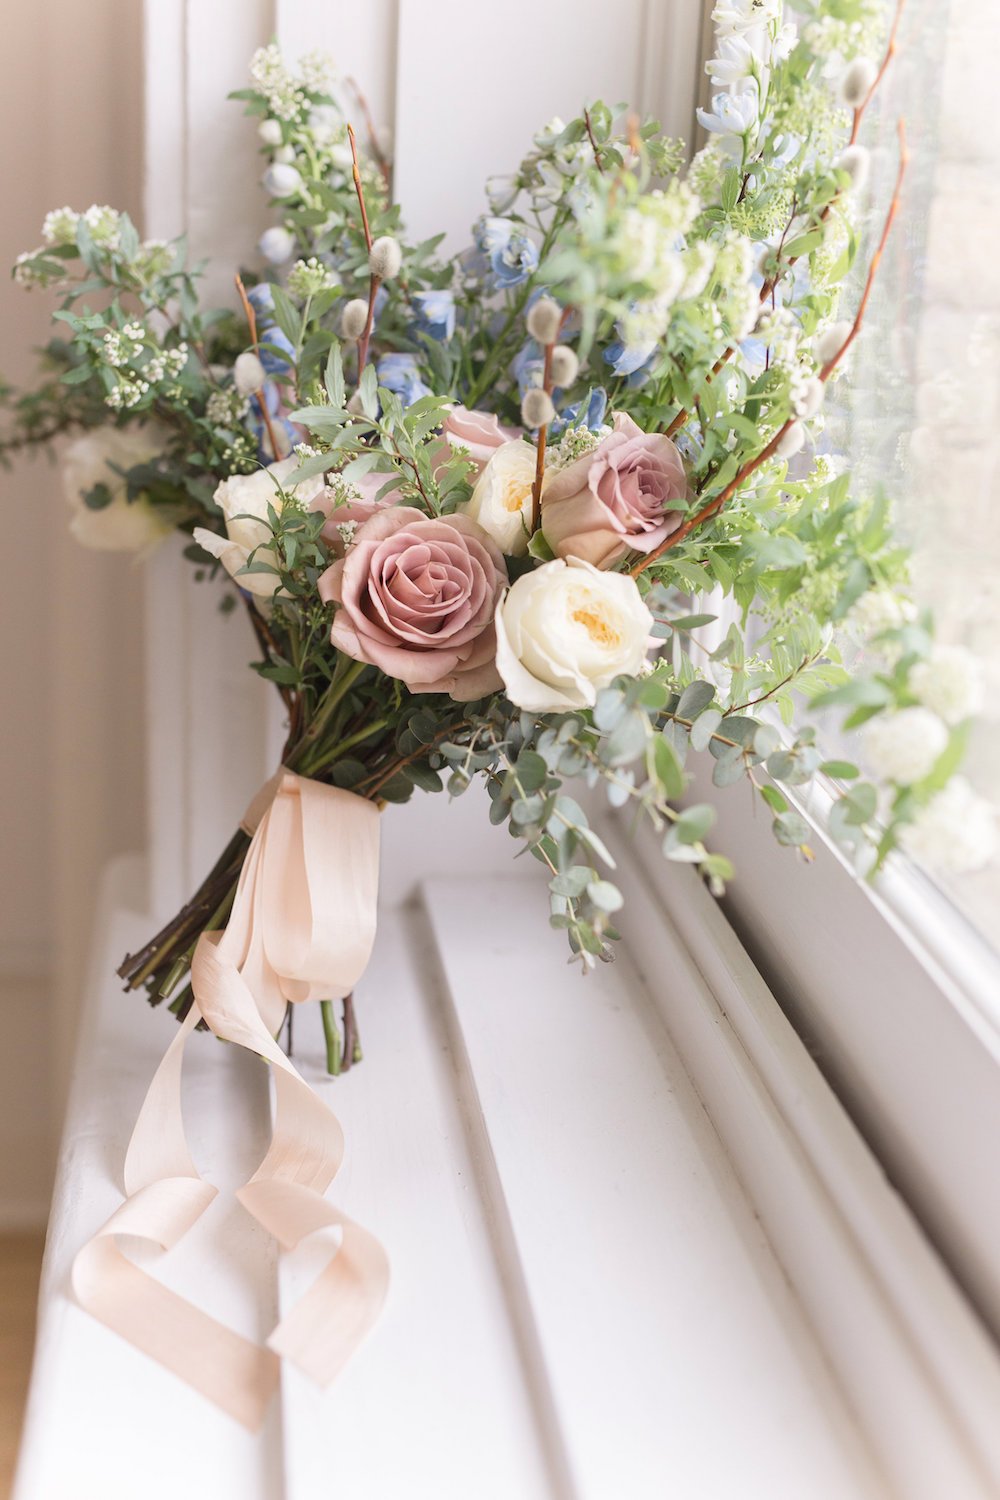 Spring Wedding Bouquet Ideas - Wedding Florist in Winnipeg